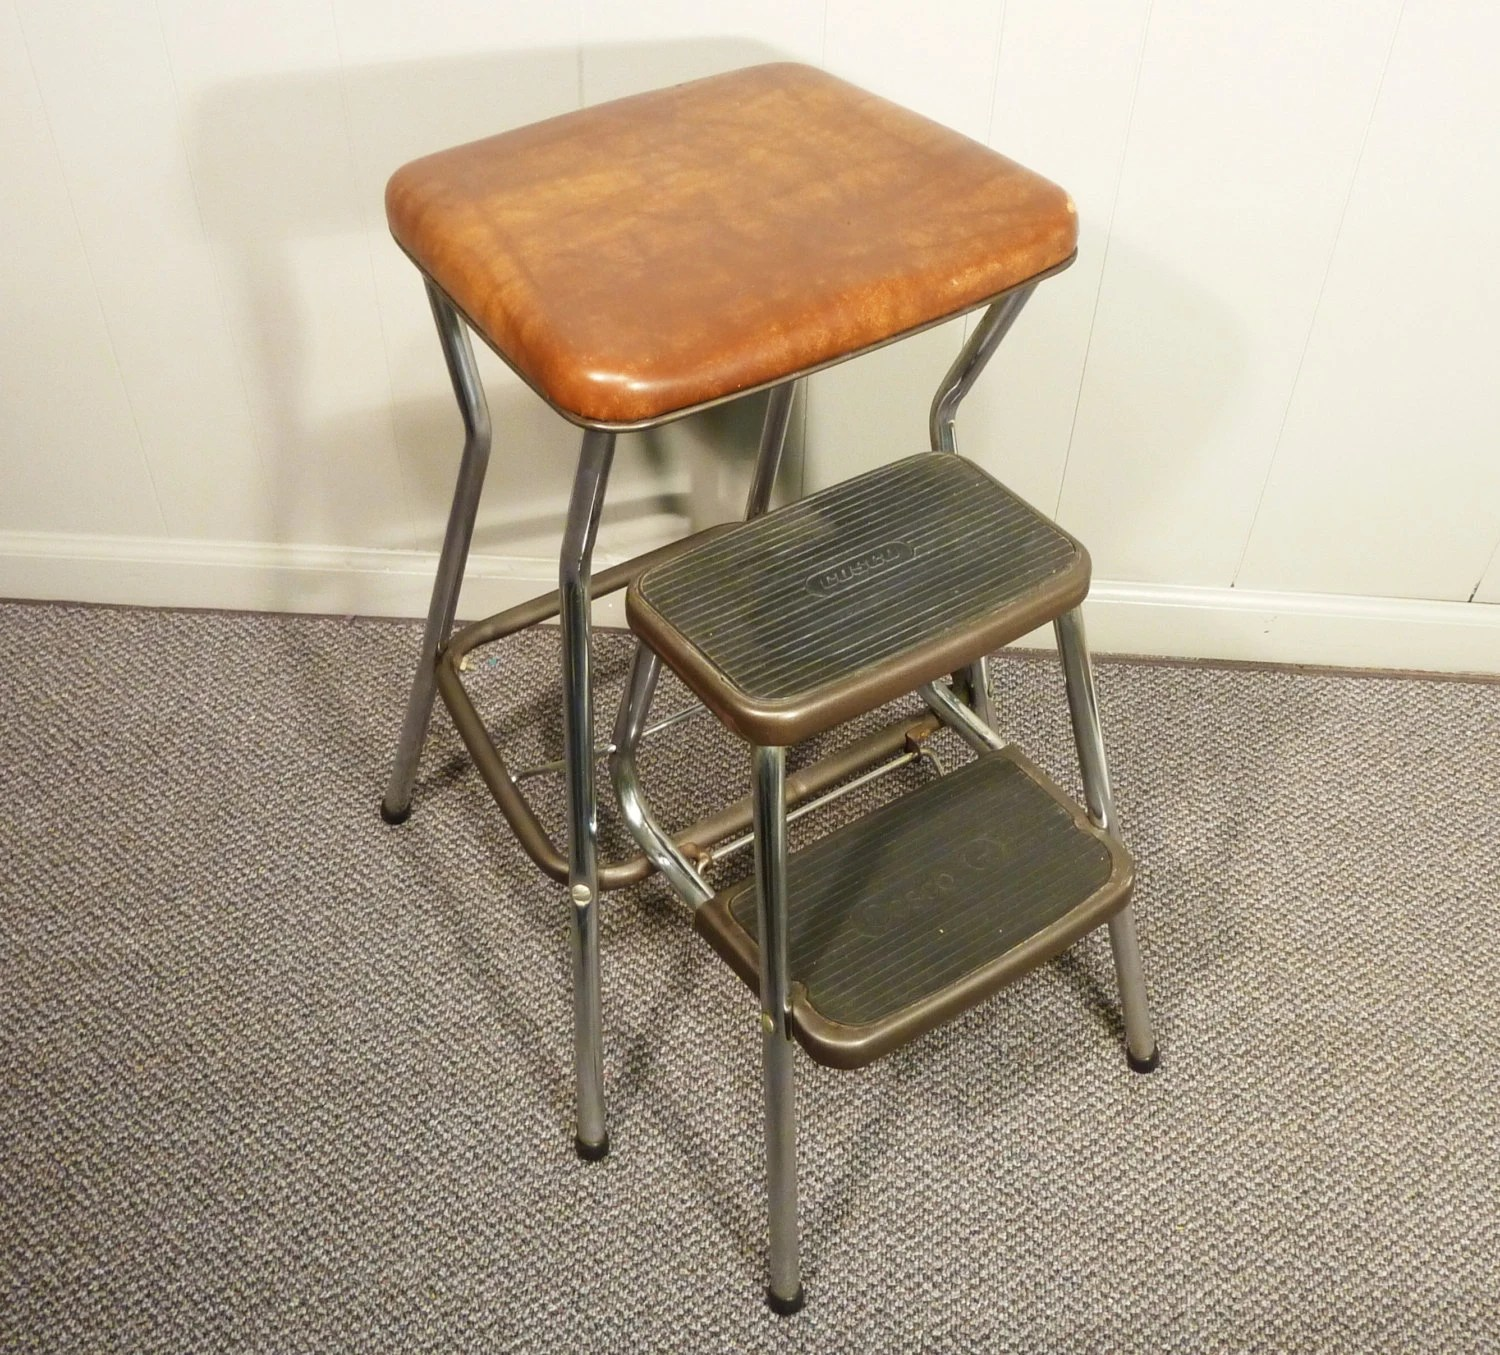 chair step stool and a half recliner canada retro 50s vintage kitchen cosco